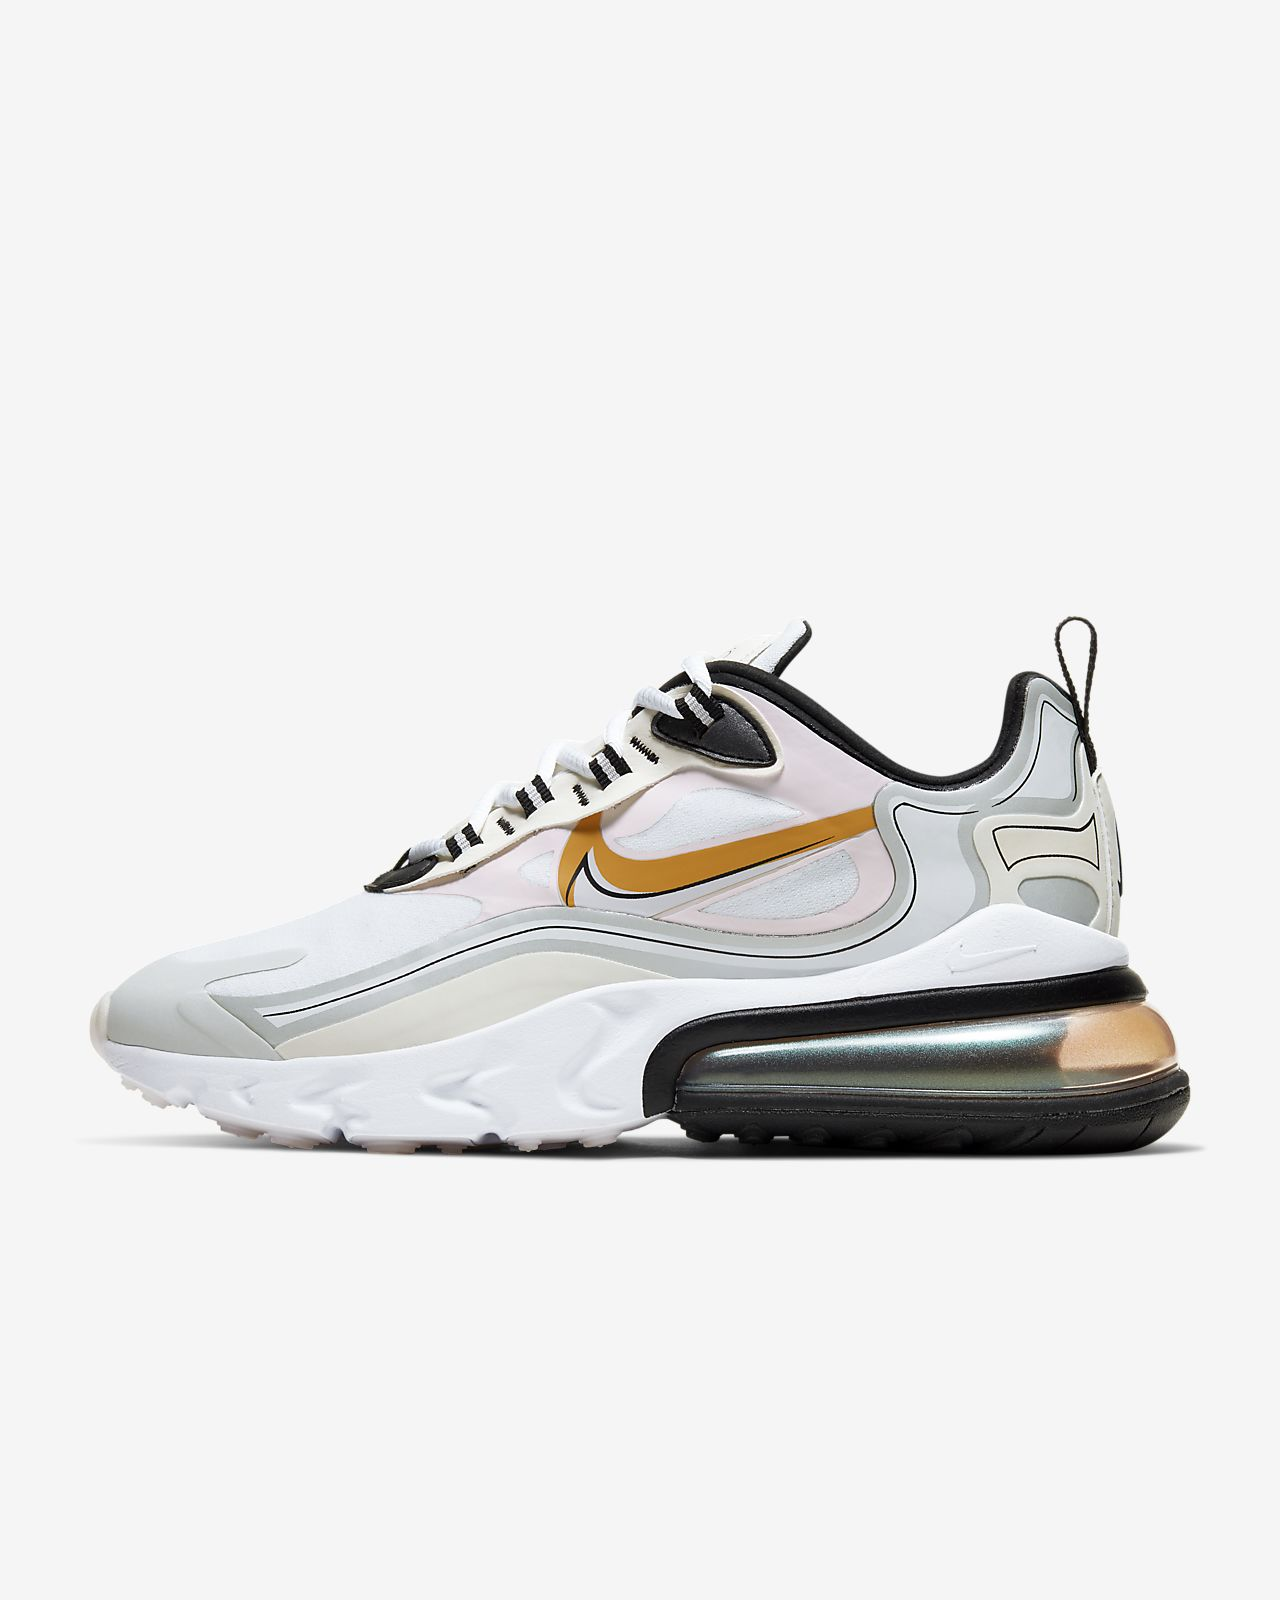 Nike Air Max 270 React LX Women's Shoe